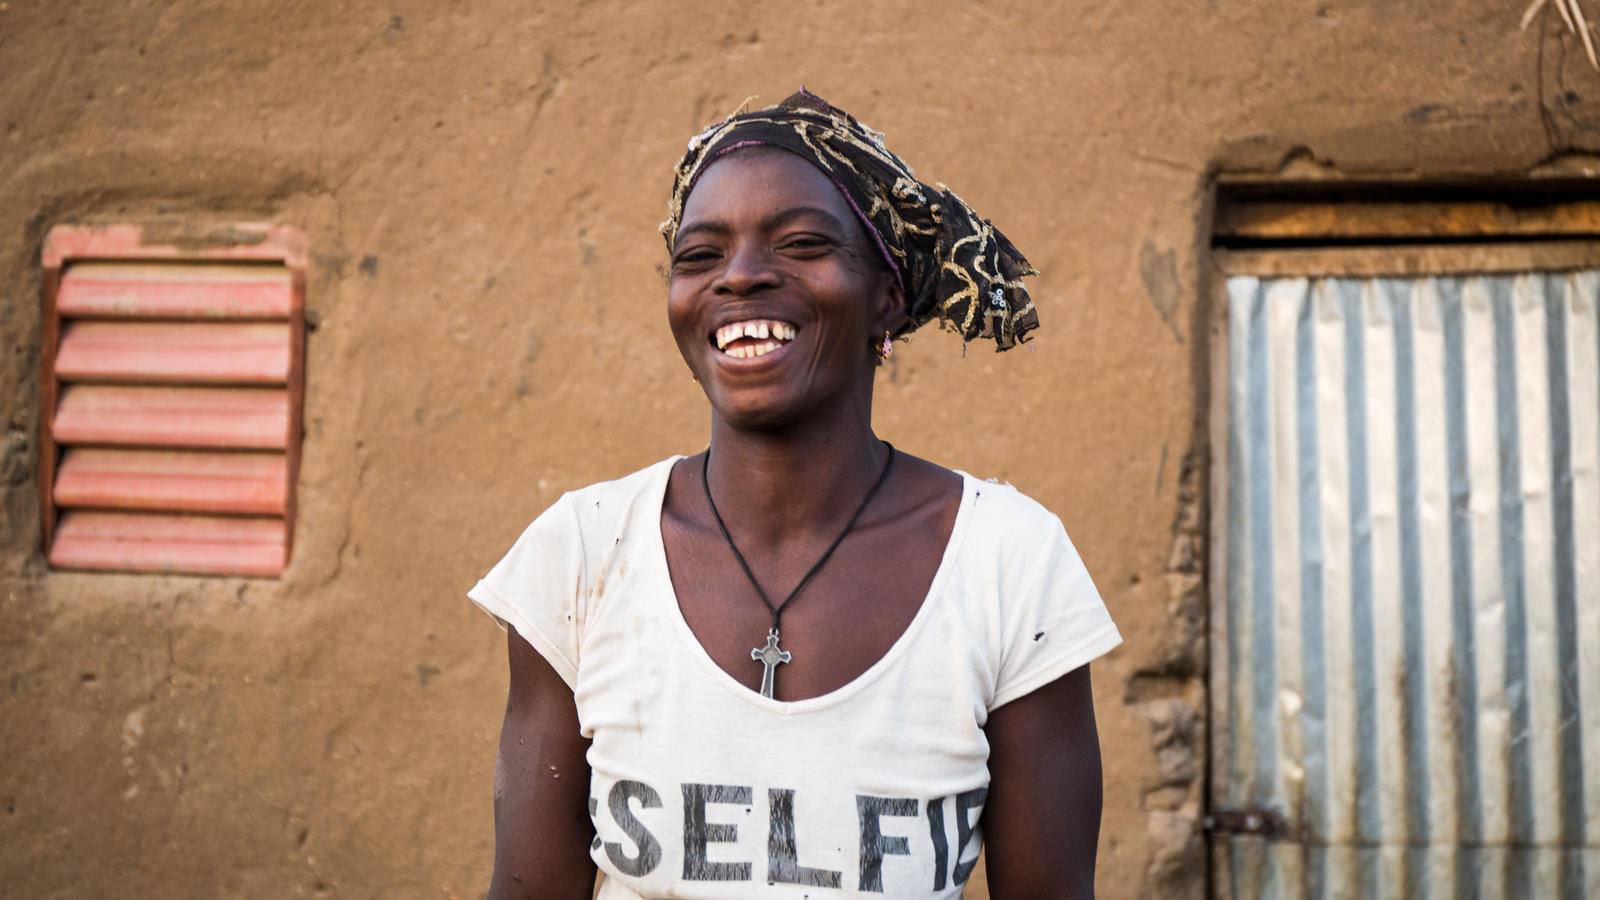 A portrait of Eveline, in the village of Sablogo, Burkina Faso, January 2018.